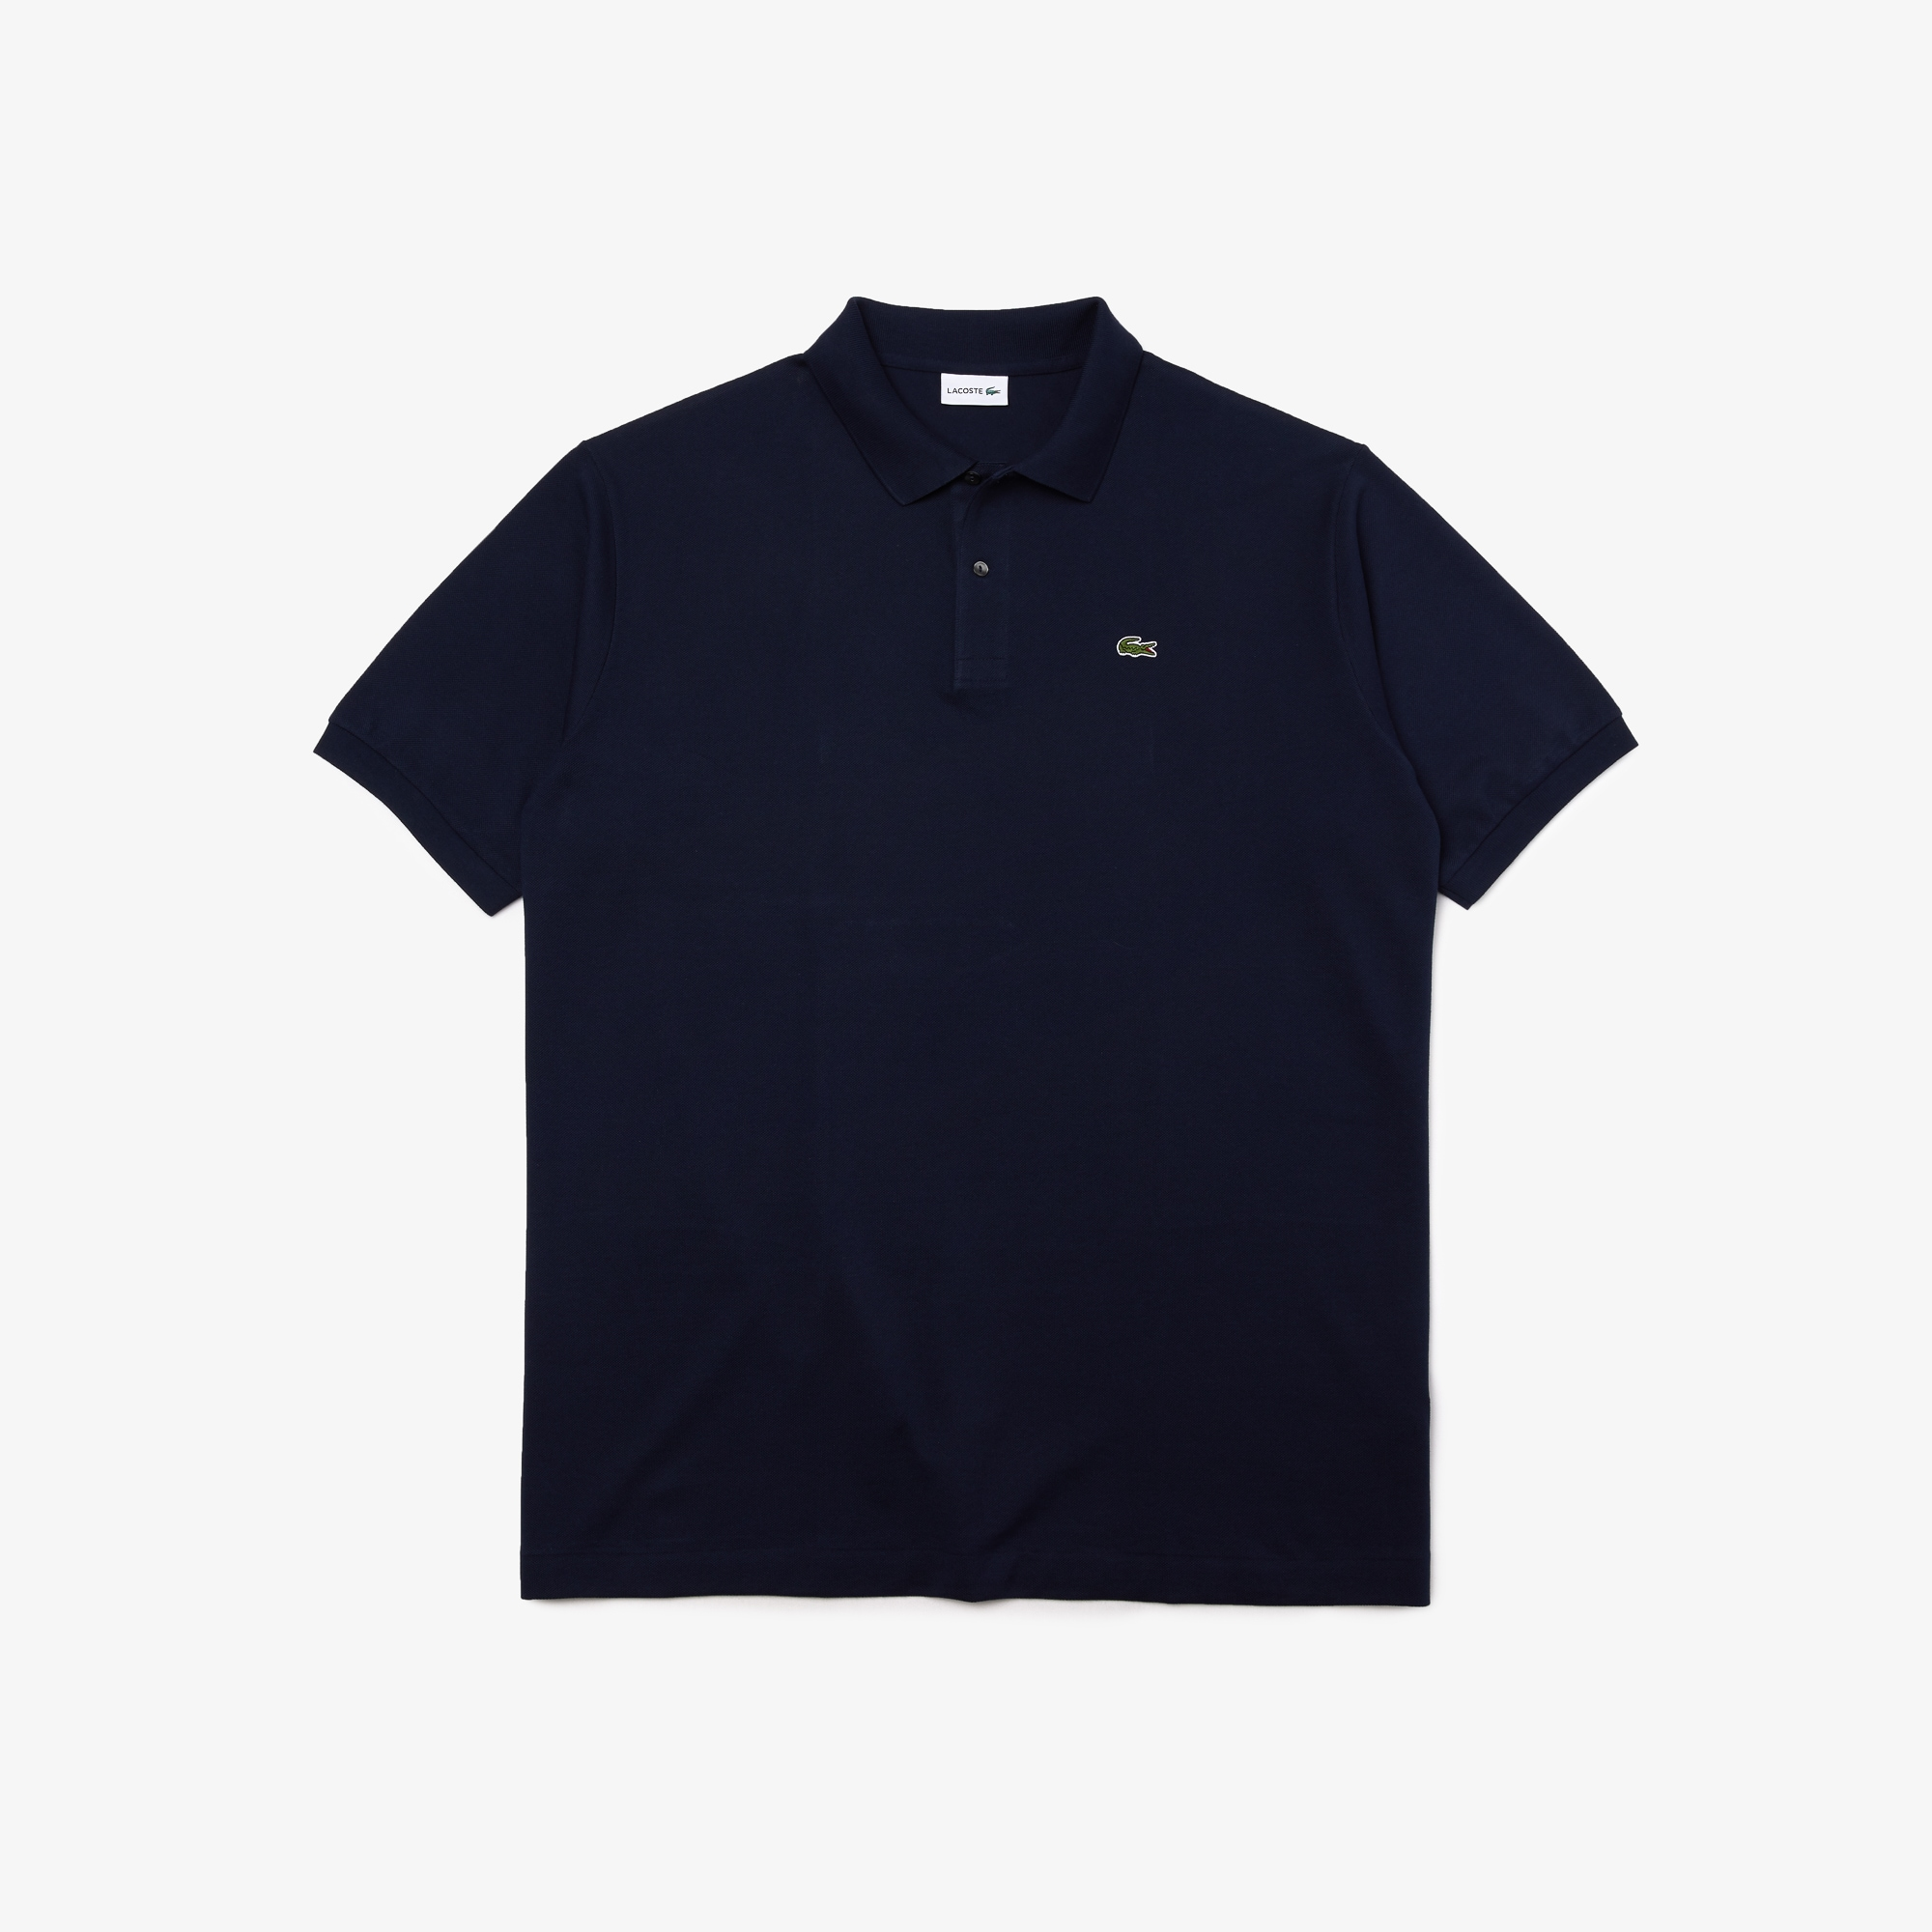 Men's Lacoste Tall Fit Cotton Polo